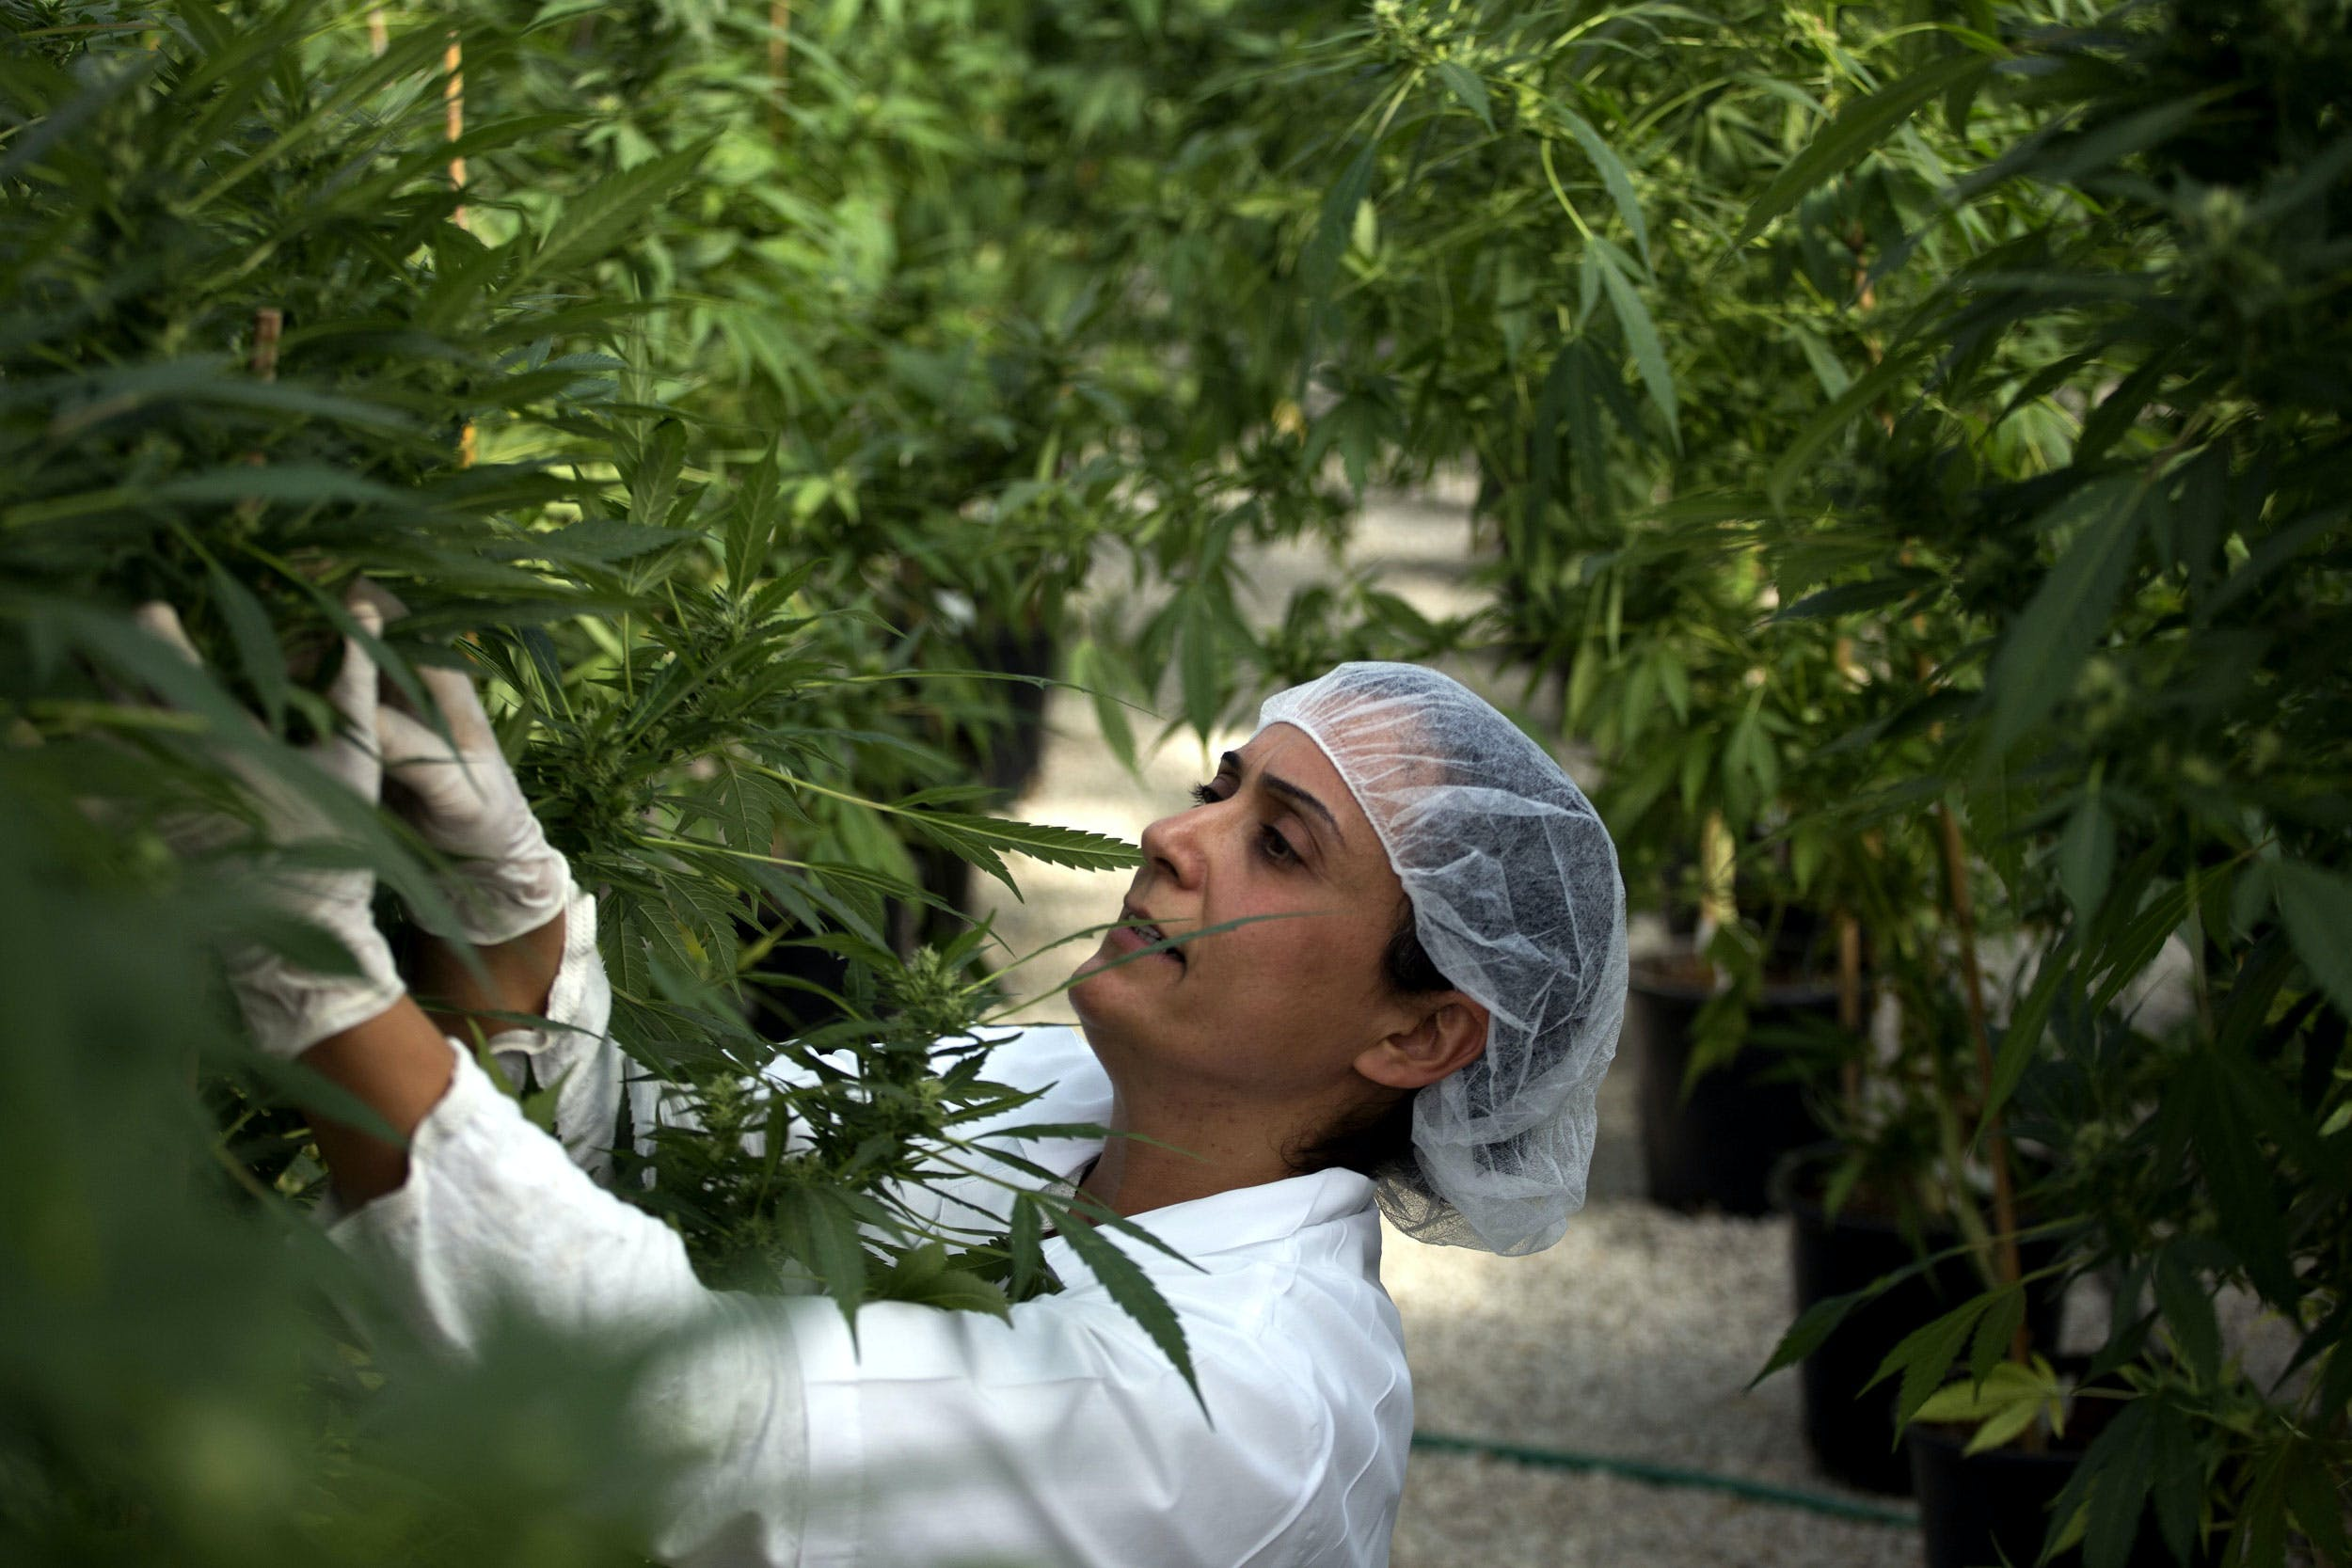 How Israelis and Palestinians Are Using Cannabis to Cope With Their Trauma 1 How Israelis and Palestinians Are Using Cannabis to Cope With Their Trauma